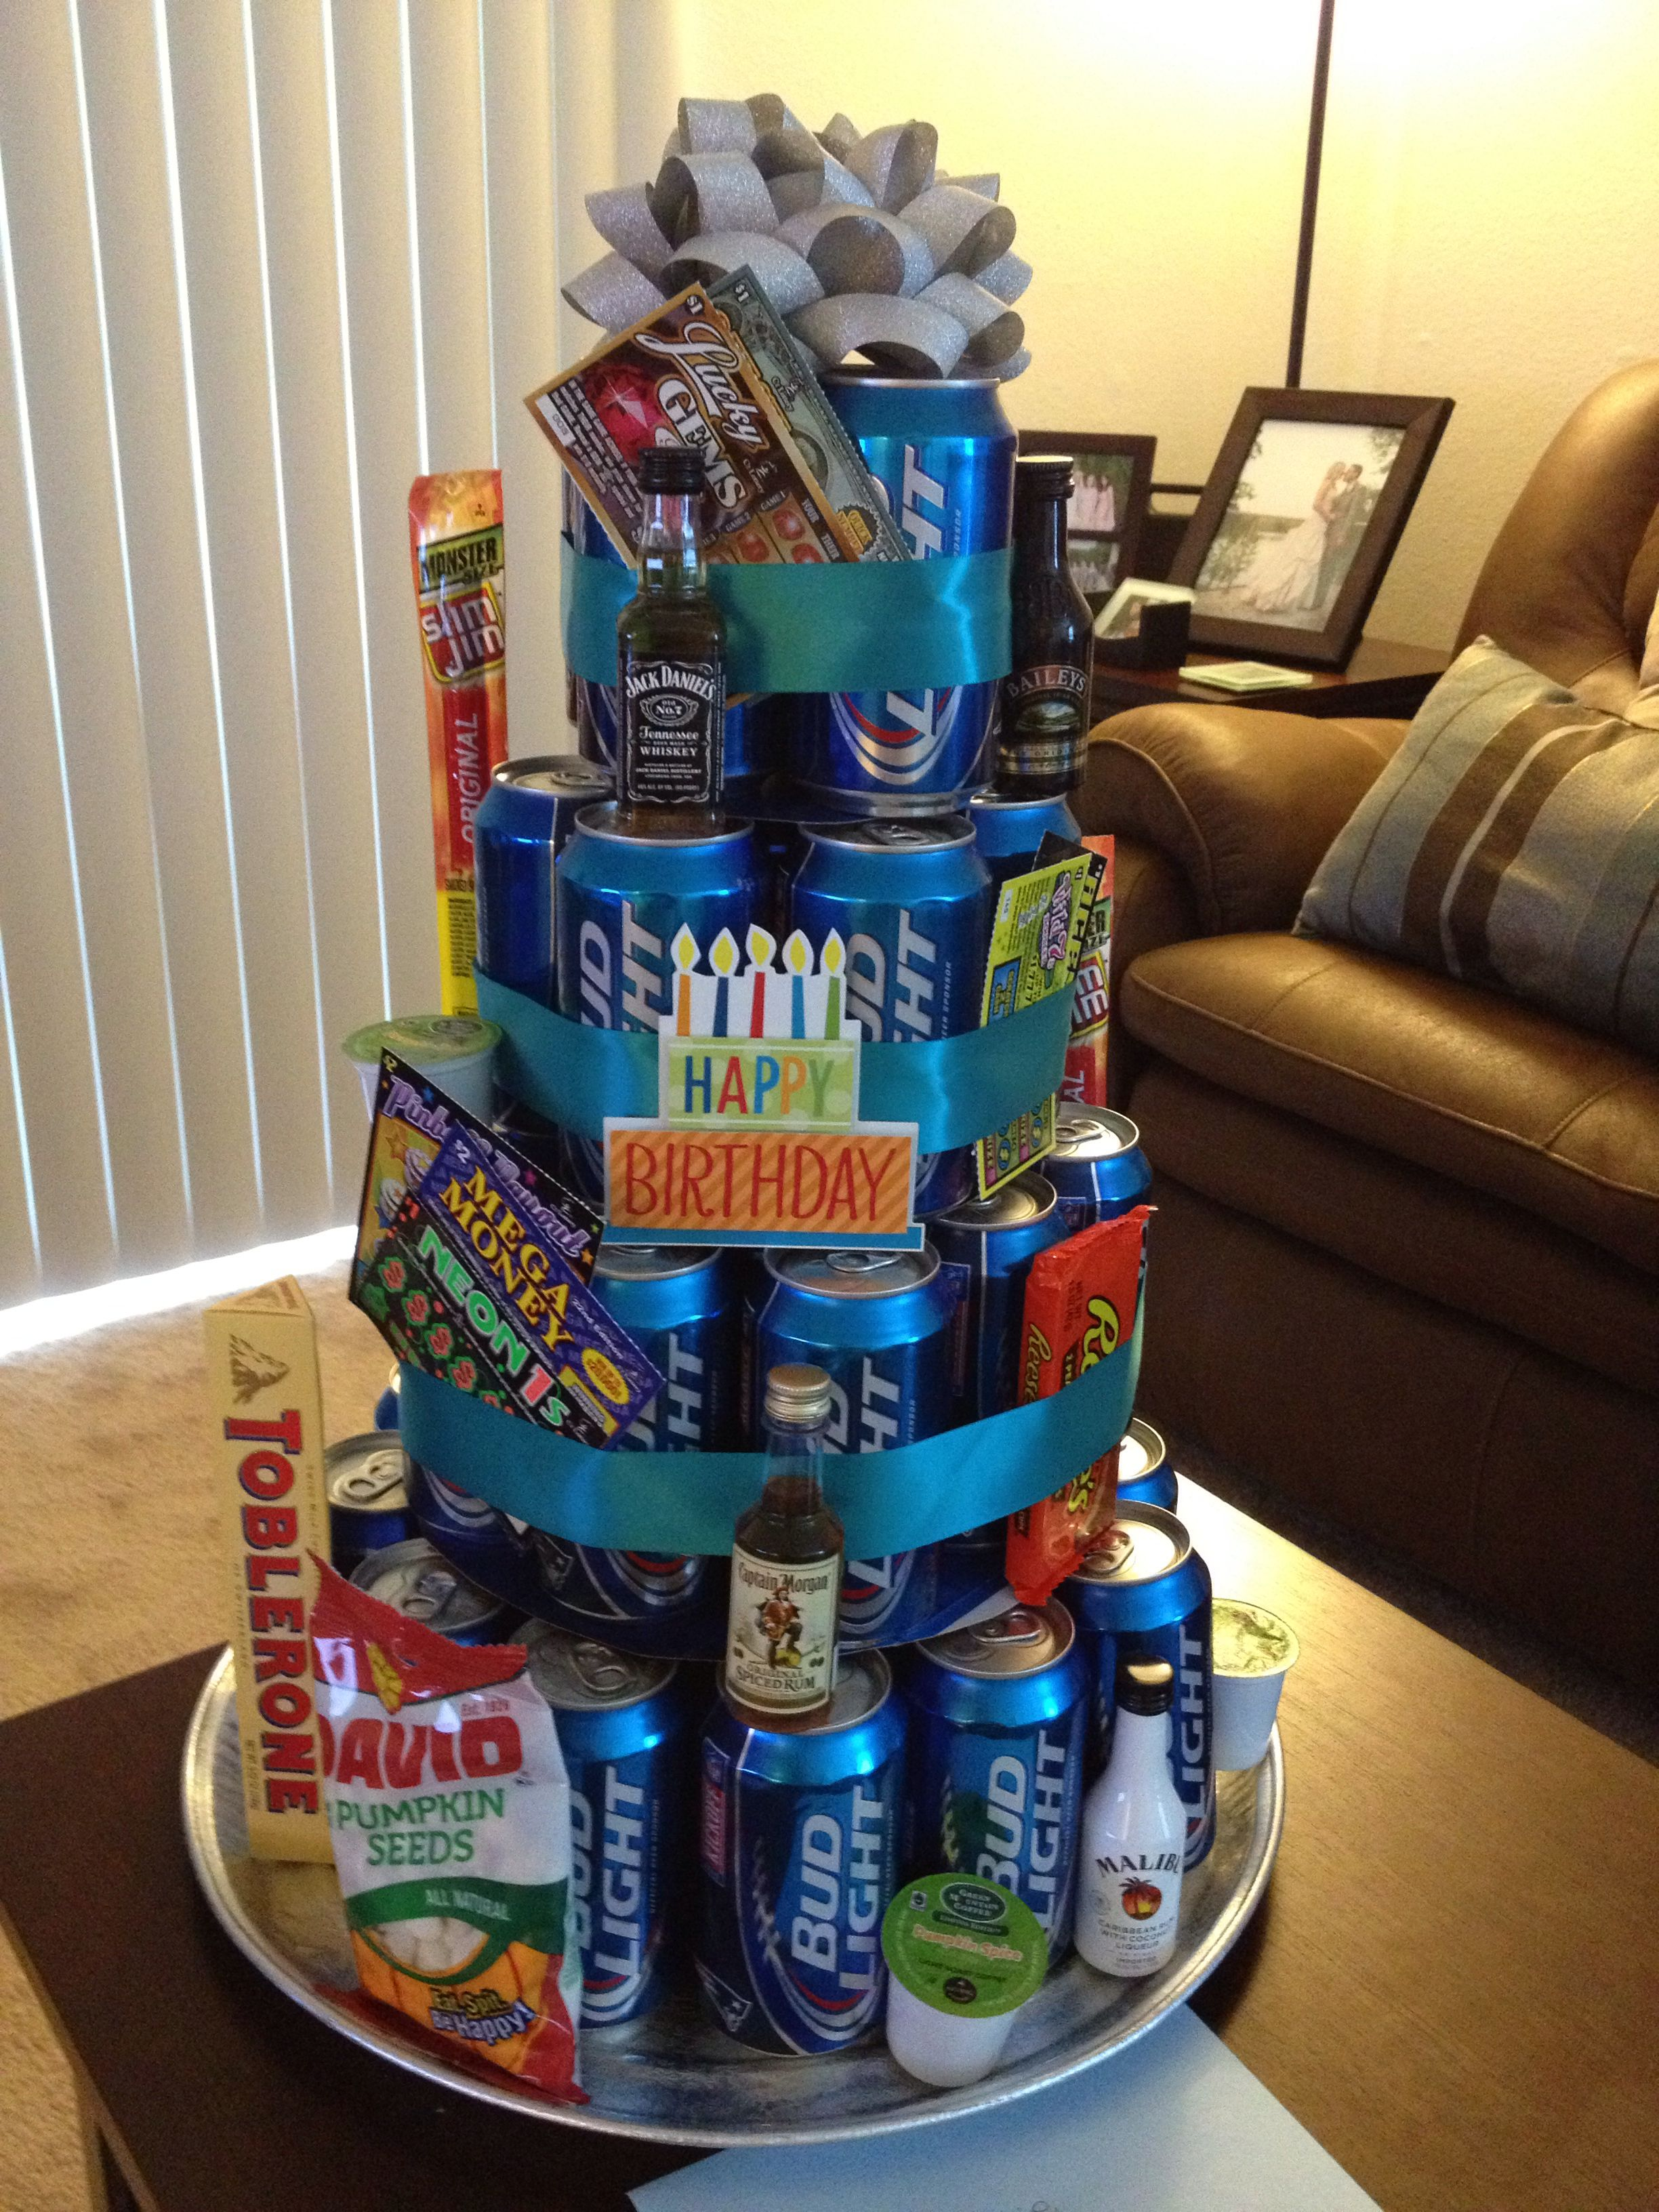 We would do a Mt Dew cake 12 round 13 cans 10 round 9 cans